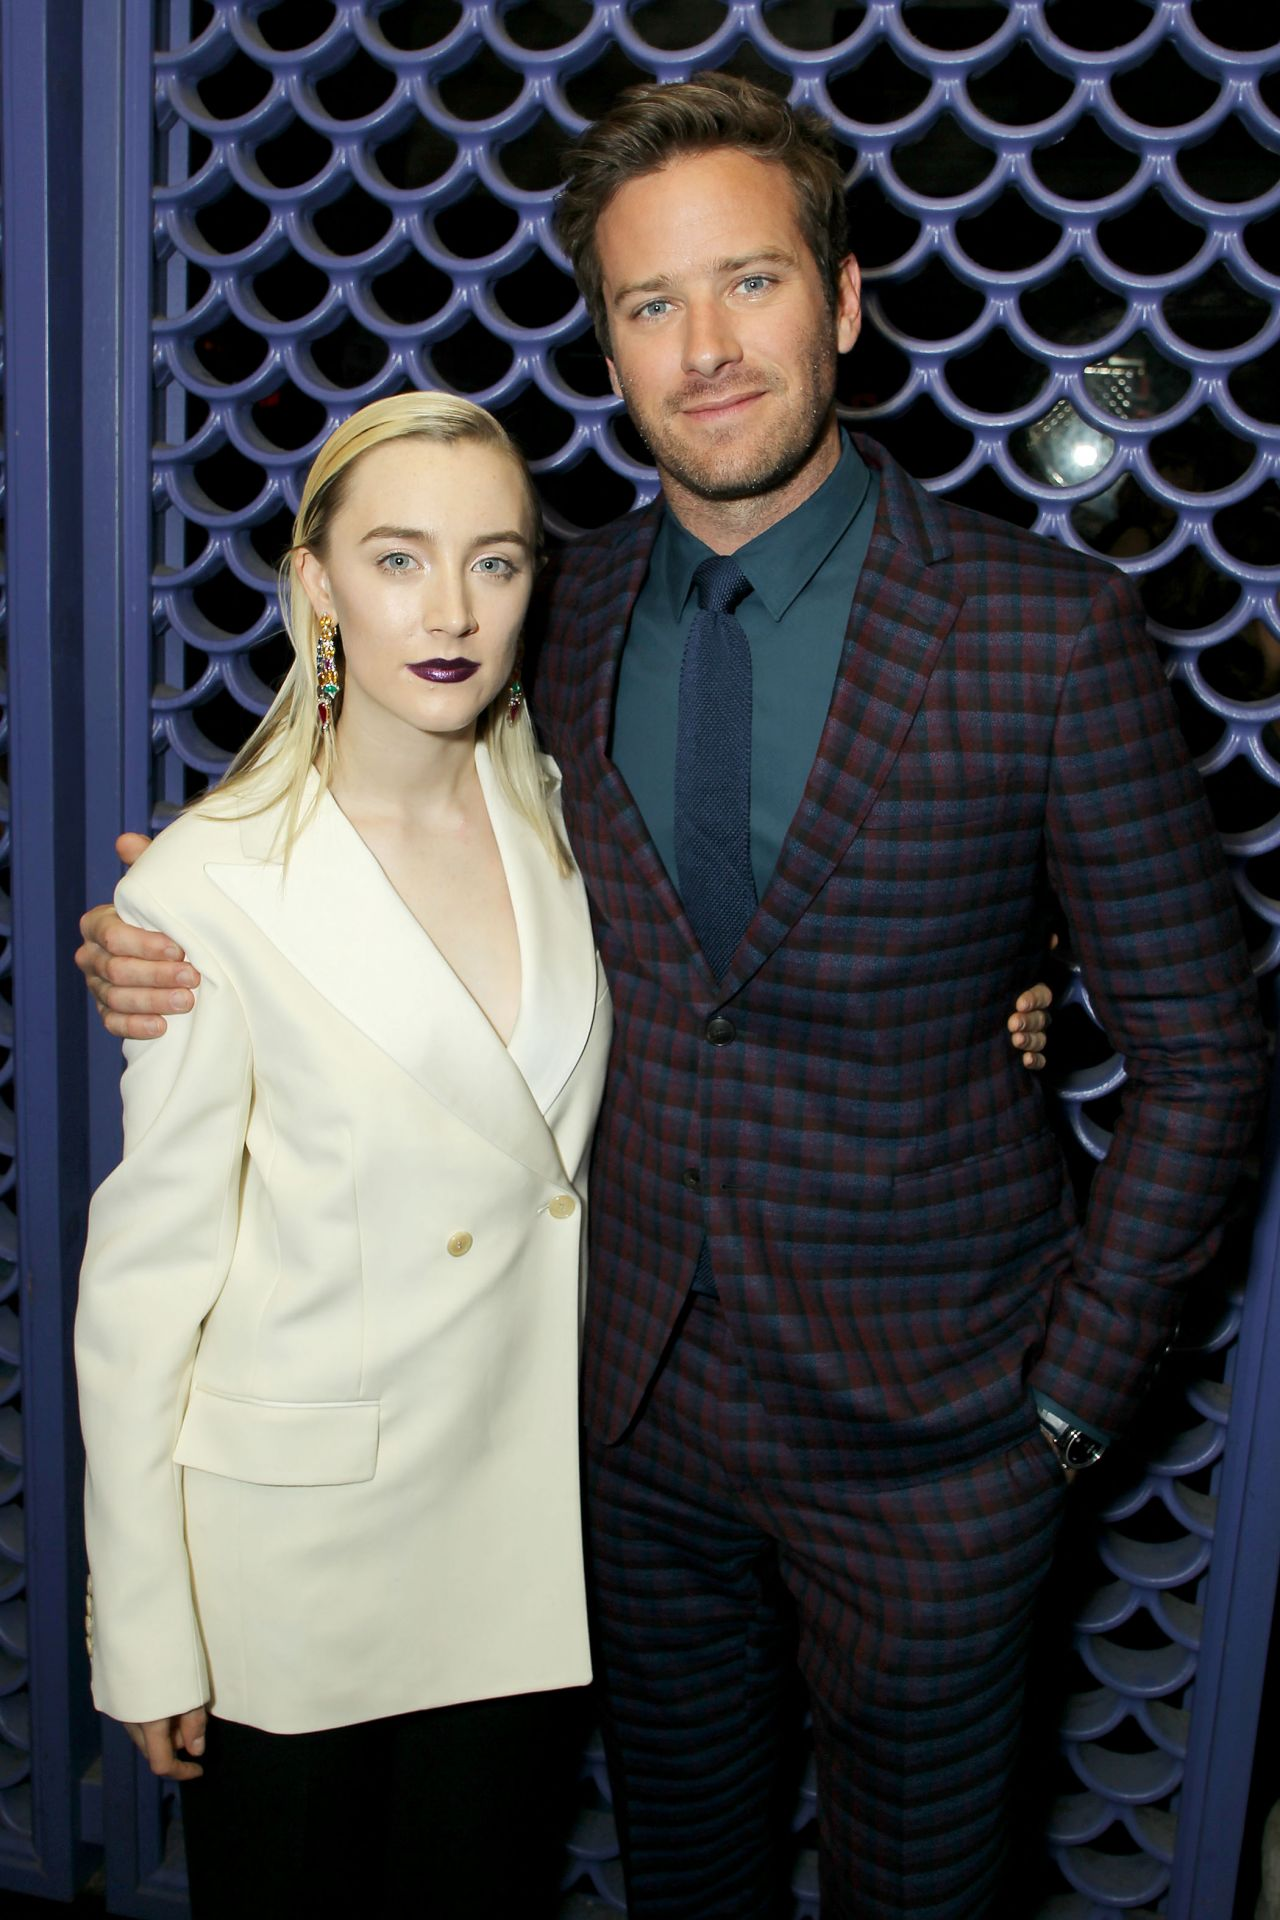 http://celebmafia.com/wp-content/uploads/2018/01/saoirse-ronan-2017-new-york-film-critics-awards-in-nyc-5.jpg